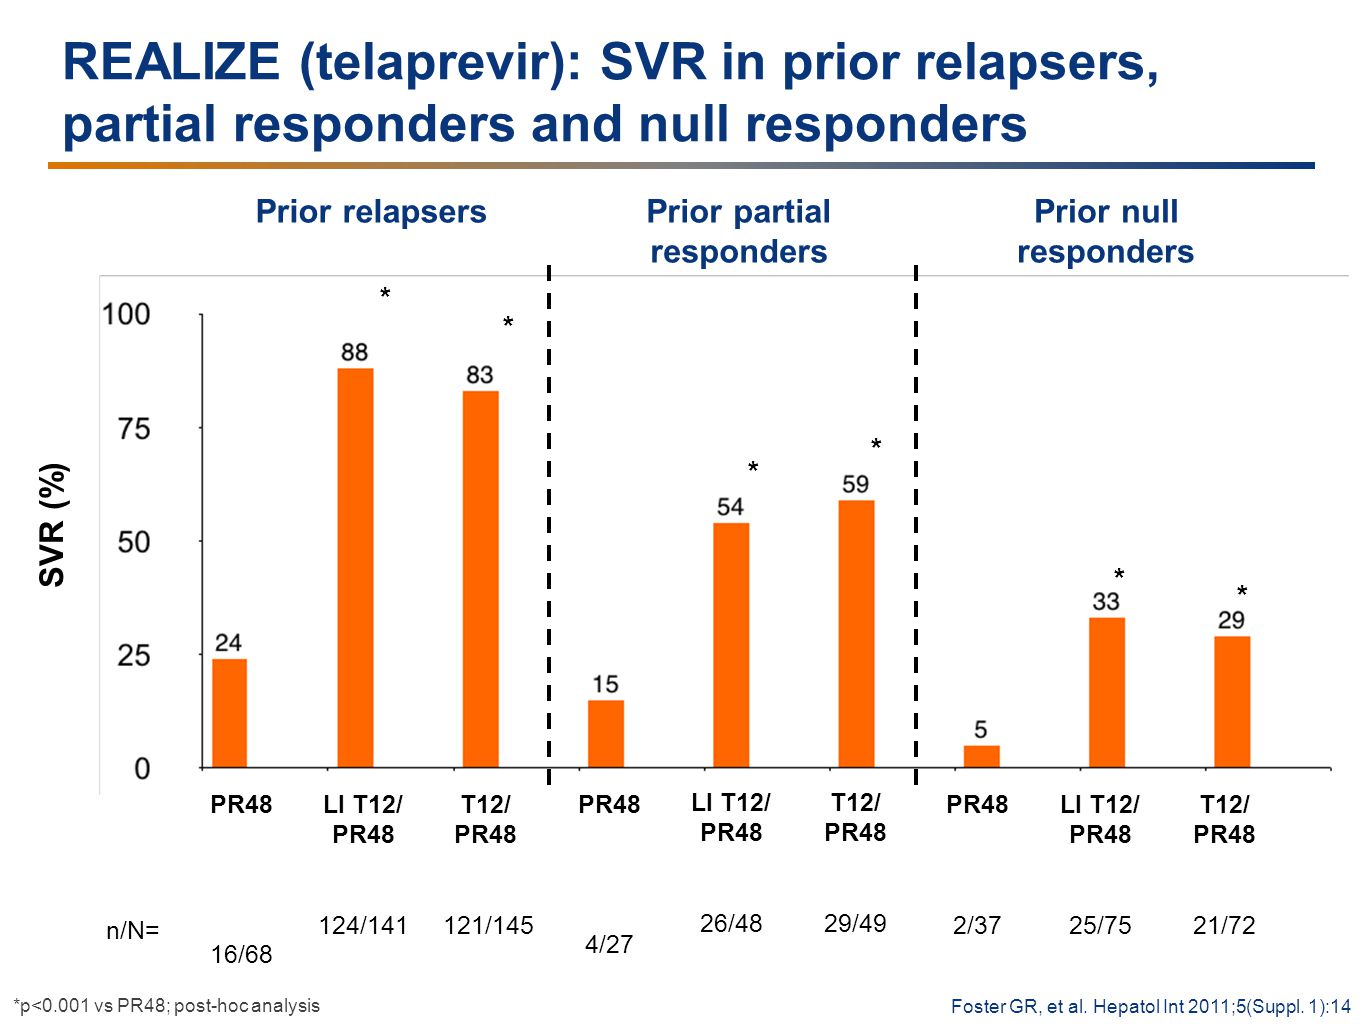 REALIZE (telaprevir): SVR in prior relapsers, partial responders and null responders PR48 4/27 T12/ PR48 29/49 SVR (%) Prior relapsersPrior partial responders LI T12/ PR48 26/48 n/N= PR48 2/37 T12/ PR48 21/72 LI T12/ PR48 25/75 PR48 16/68 T12/ PR48 121/145 LI T12/ PR48 124/141 Prior null responders * * * * * * Foster GR, et al.